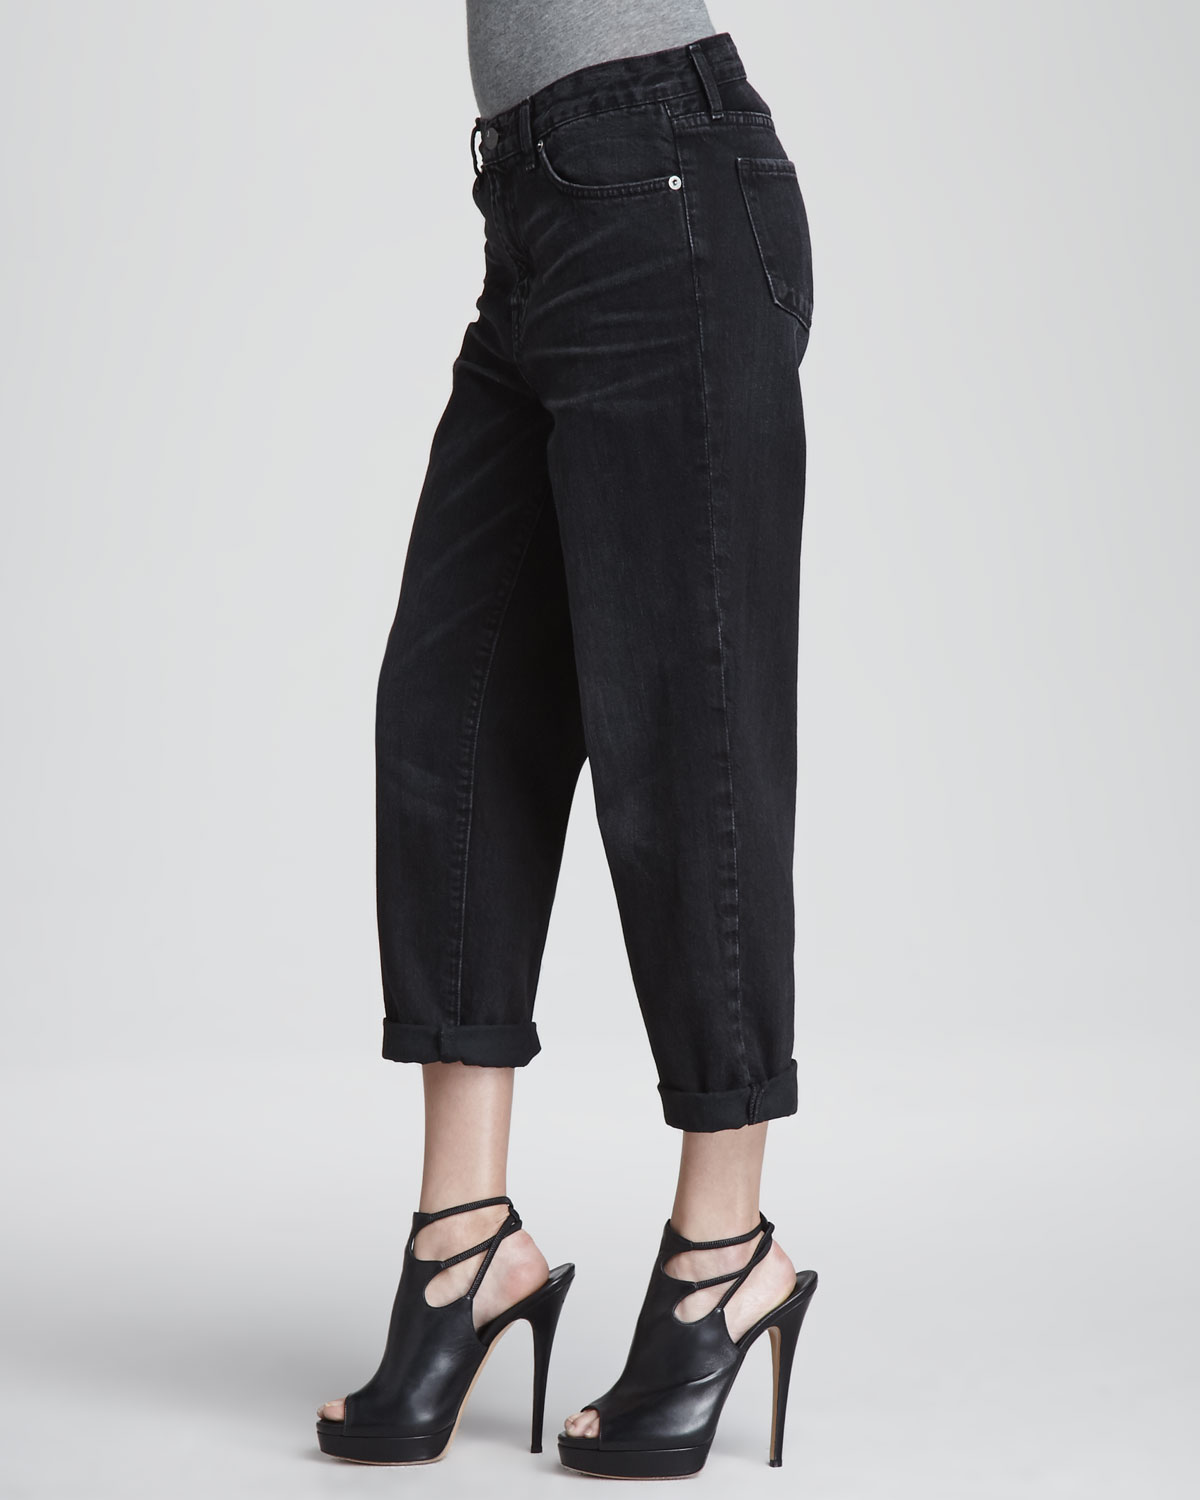 J brand Ace Cuffed Boyfriend Jeans in Black | Lyst